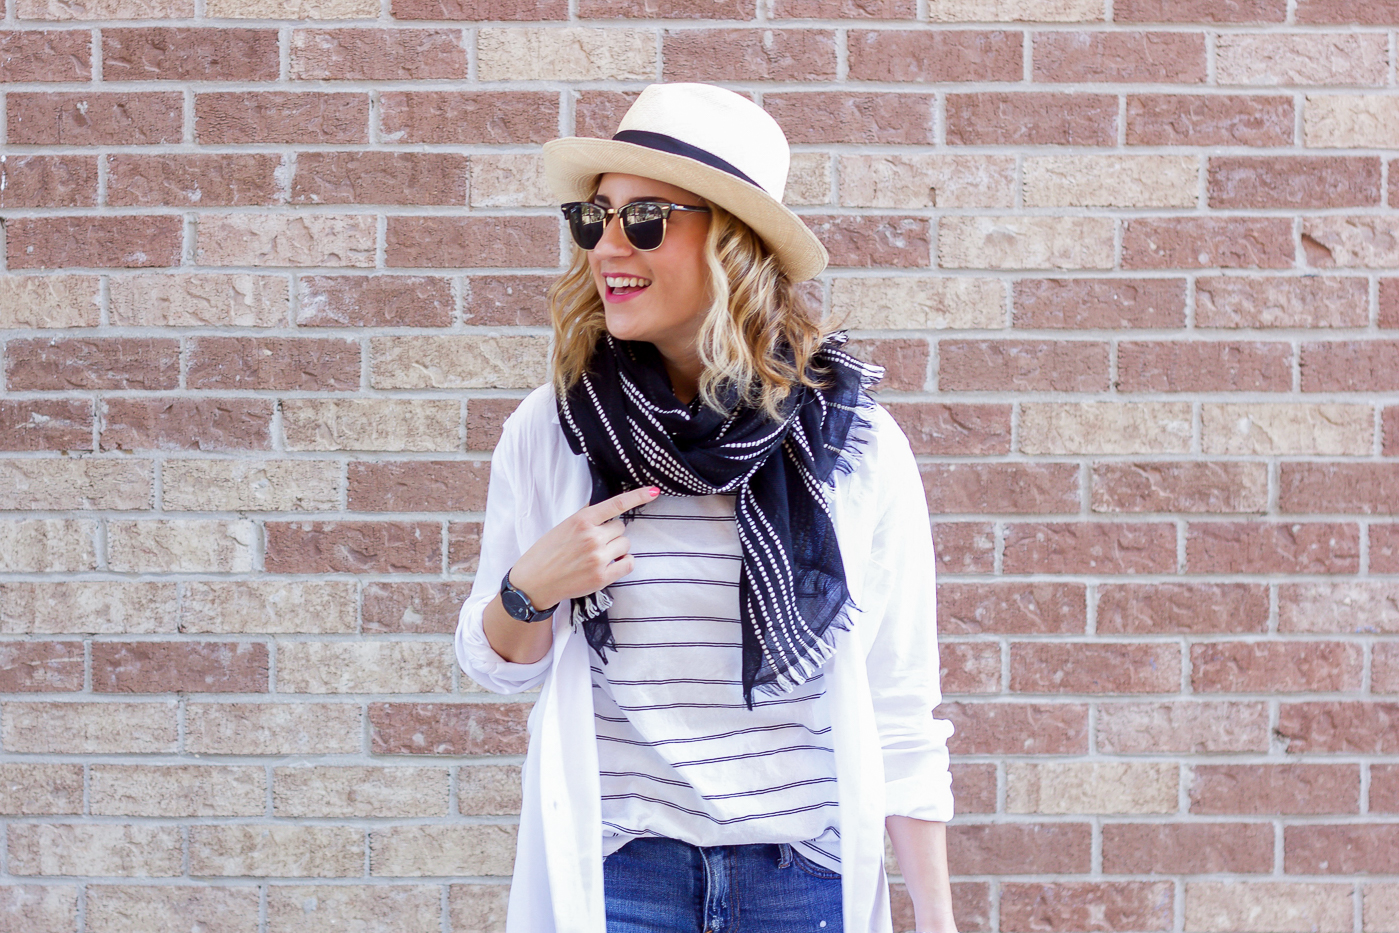 Jackie Goldhar is a Toronto-based fashion blogger, wearing a white button down top from Aritzia with a black and white striped scarf from Gap